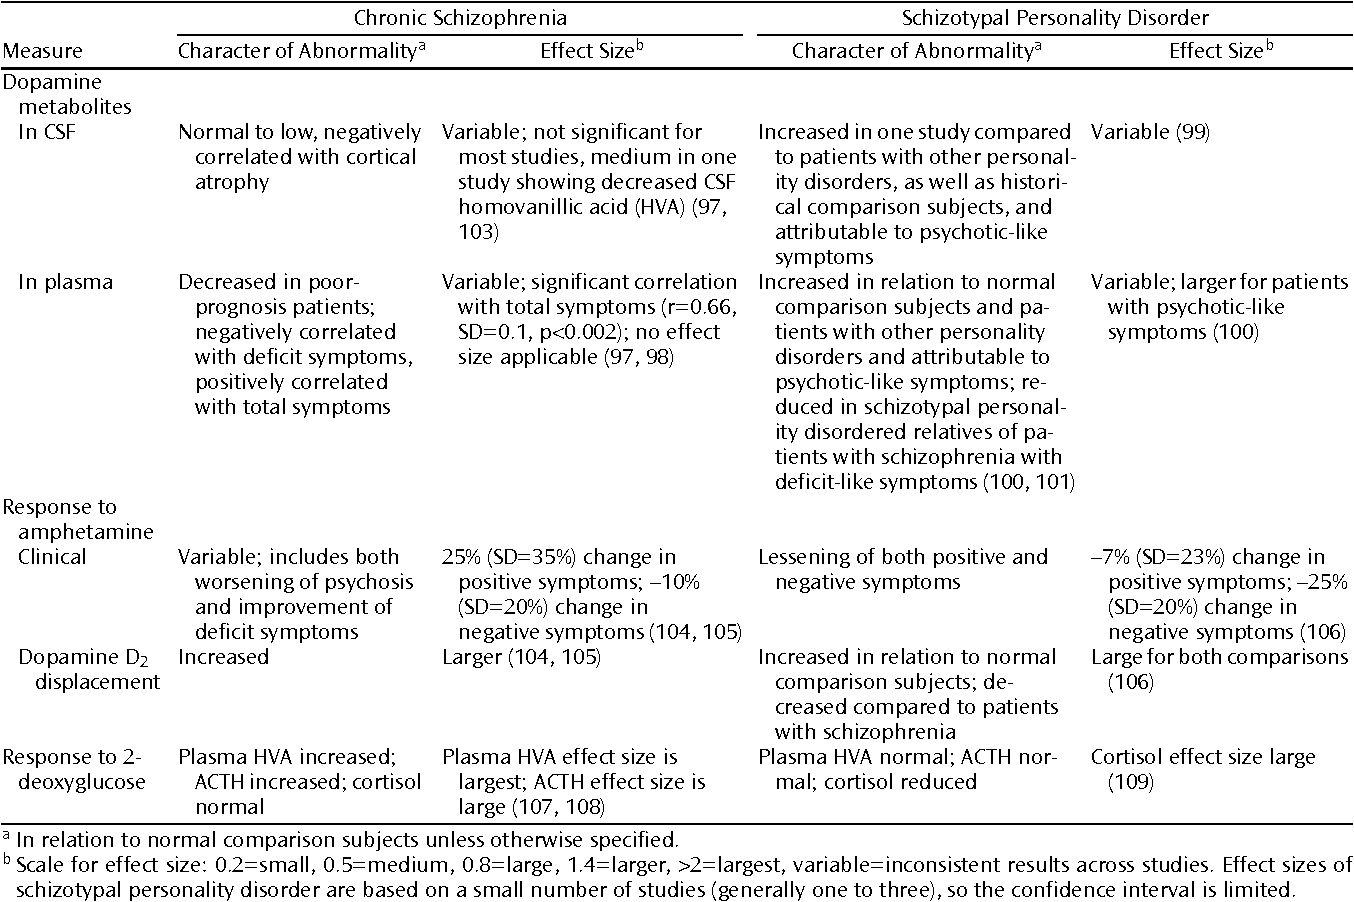 Table 5 from The pathophysiology of schizophrenia disorders